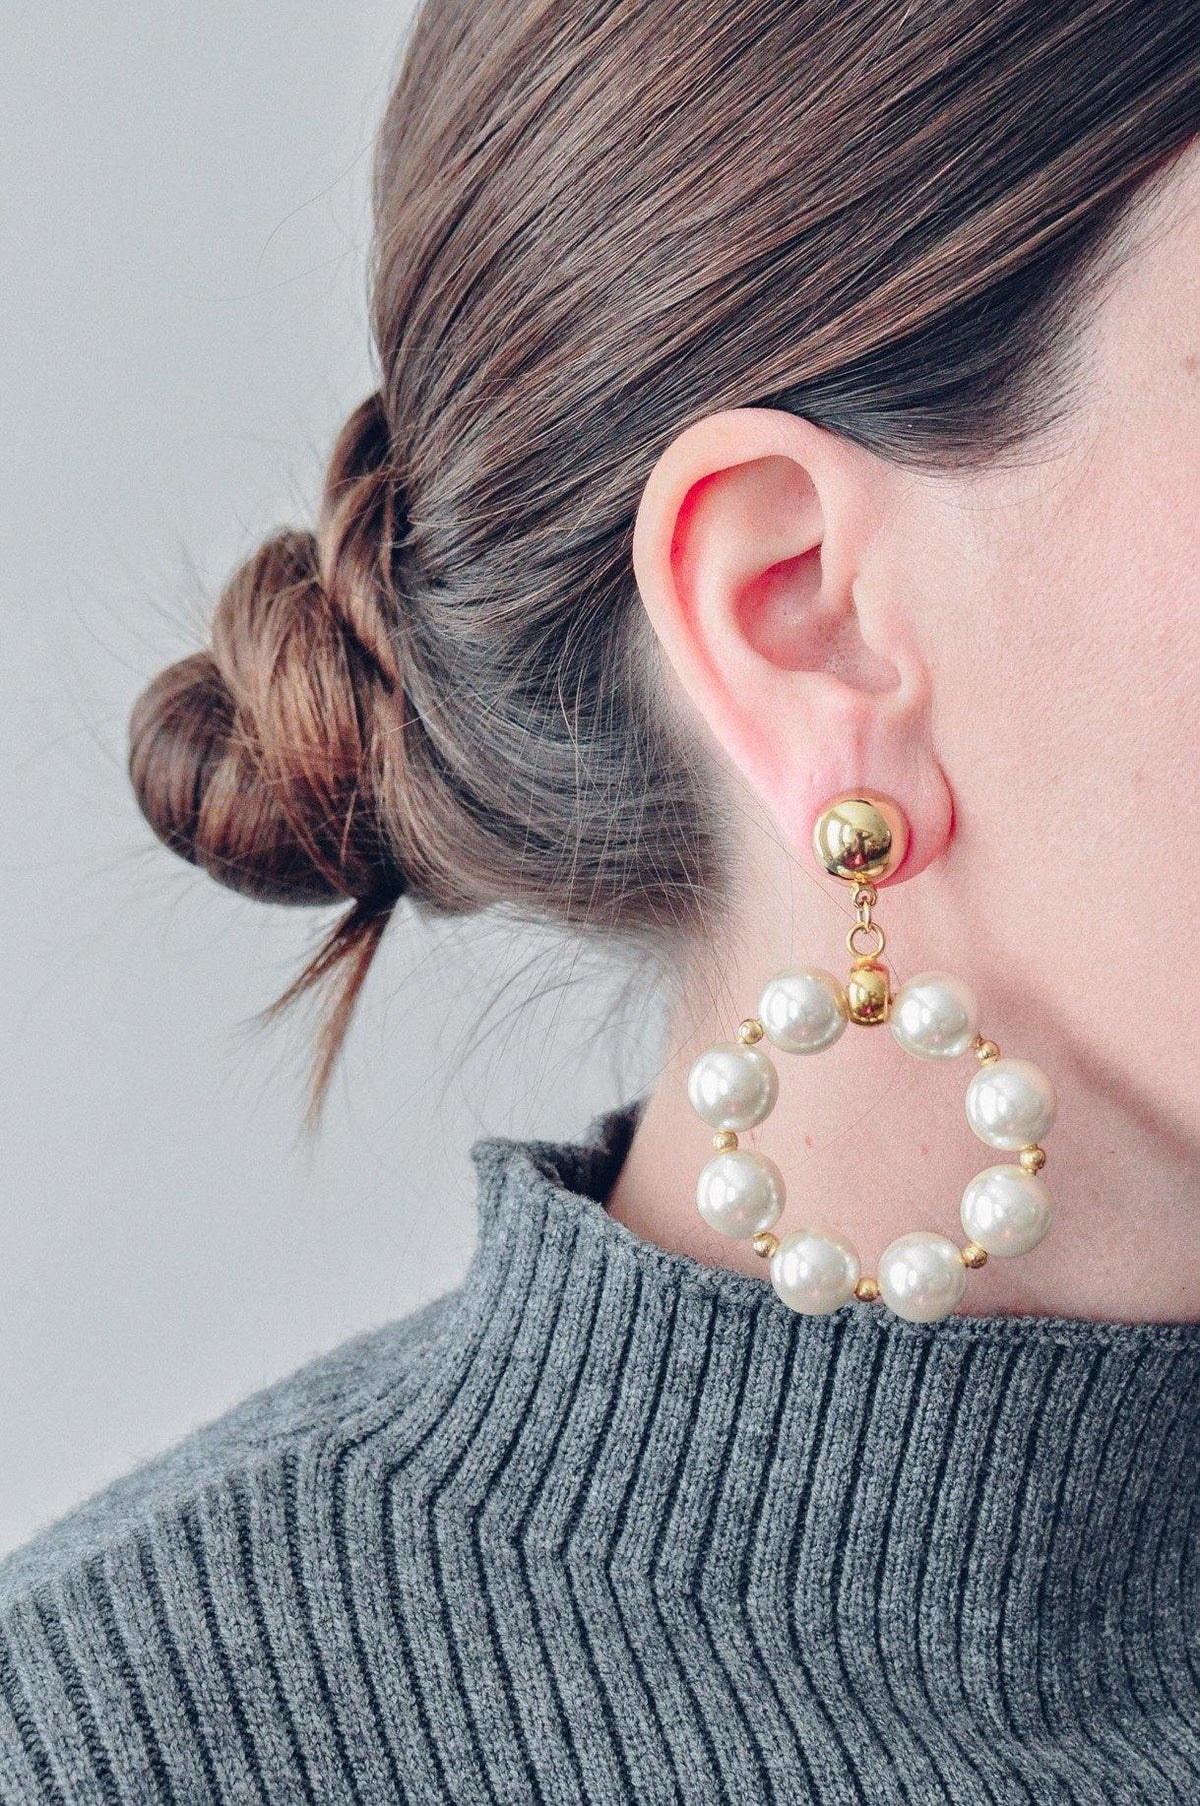 Vintage Statement Hoop Earrings from Sweet & Spark.